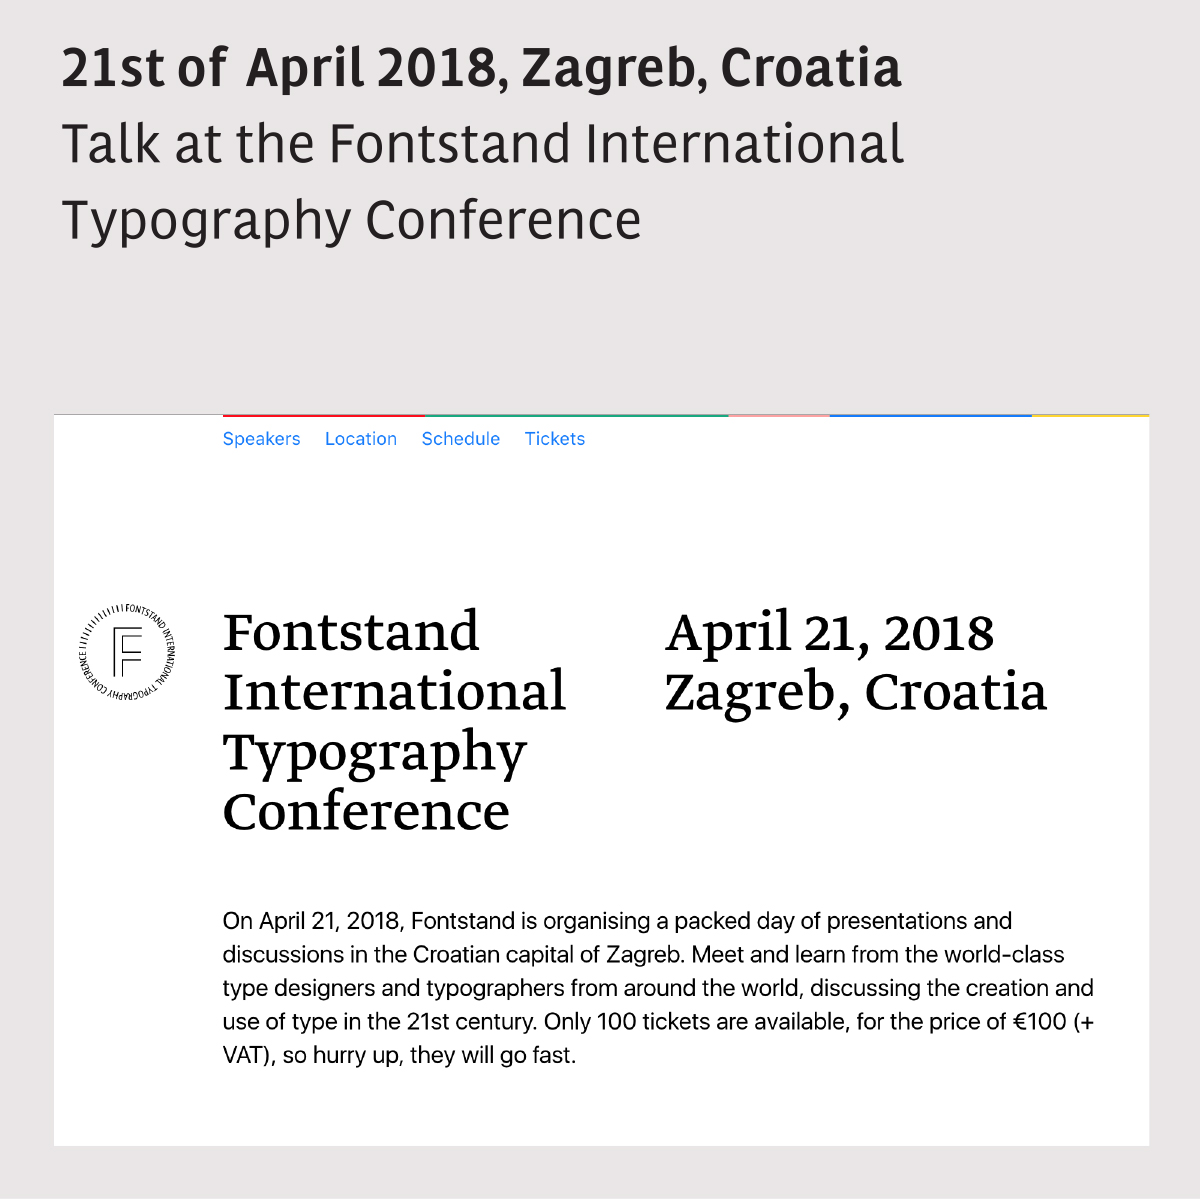 Talk: Fontstand International Typography Conference